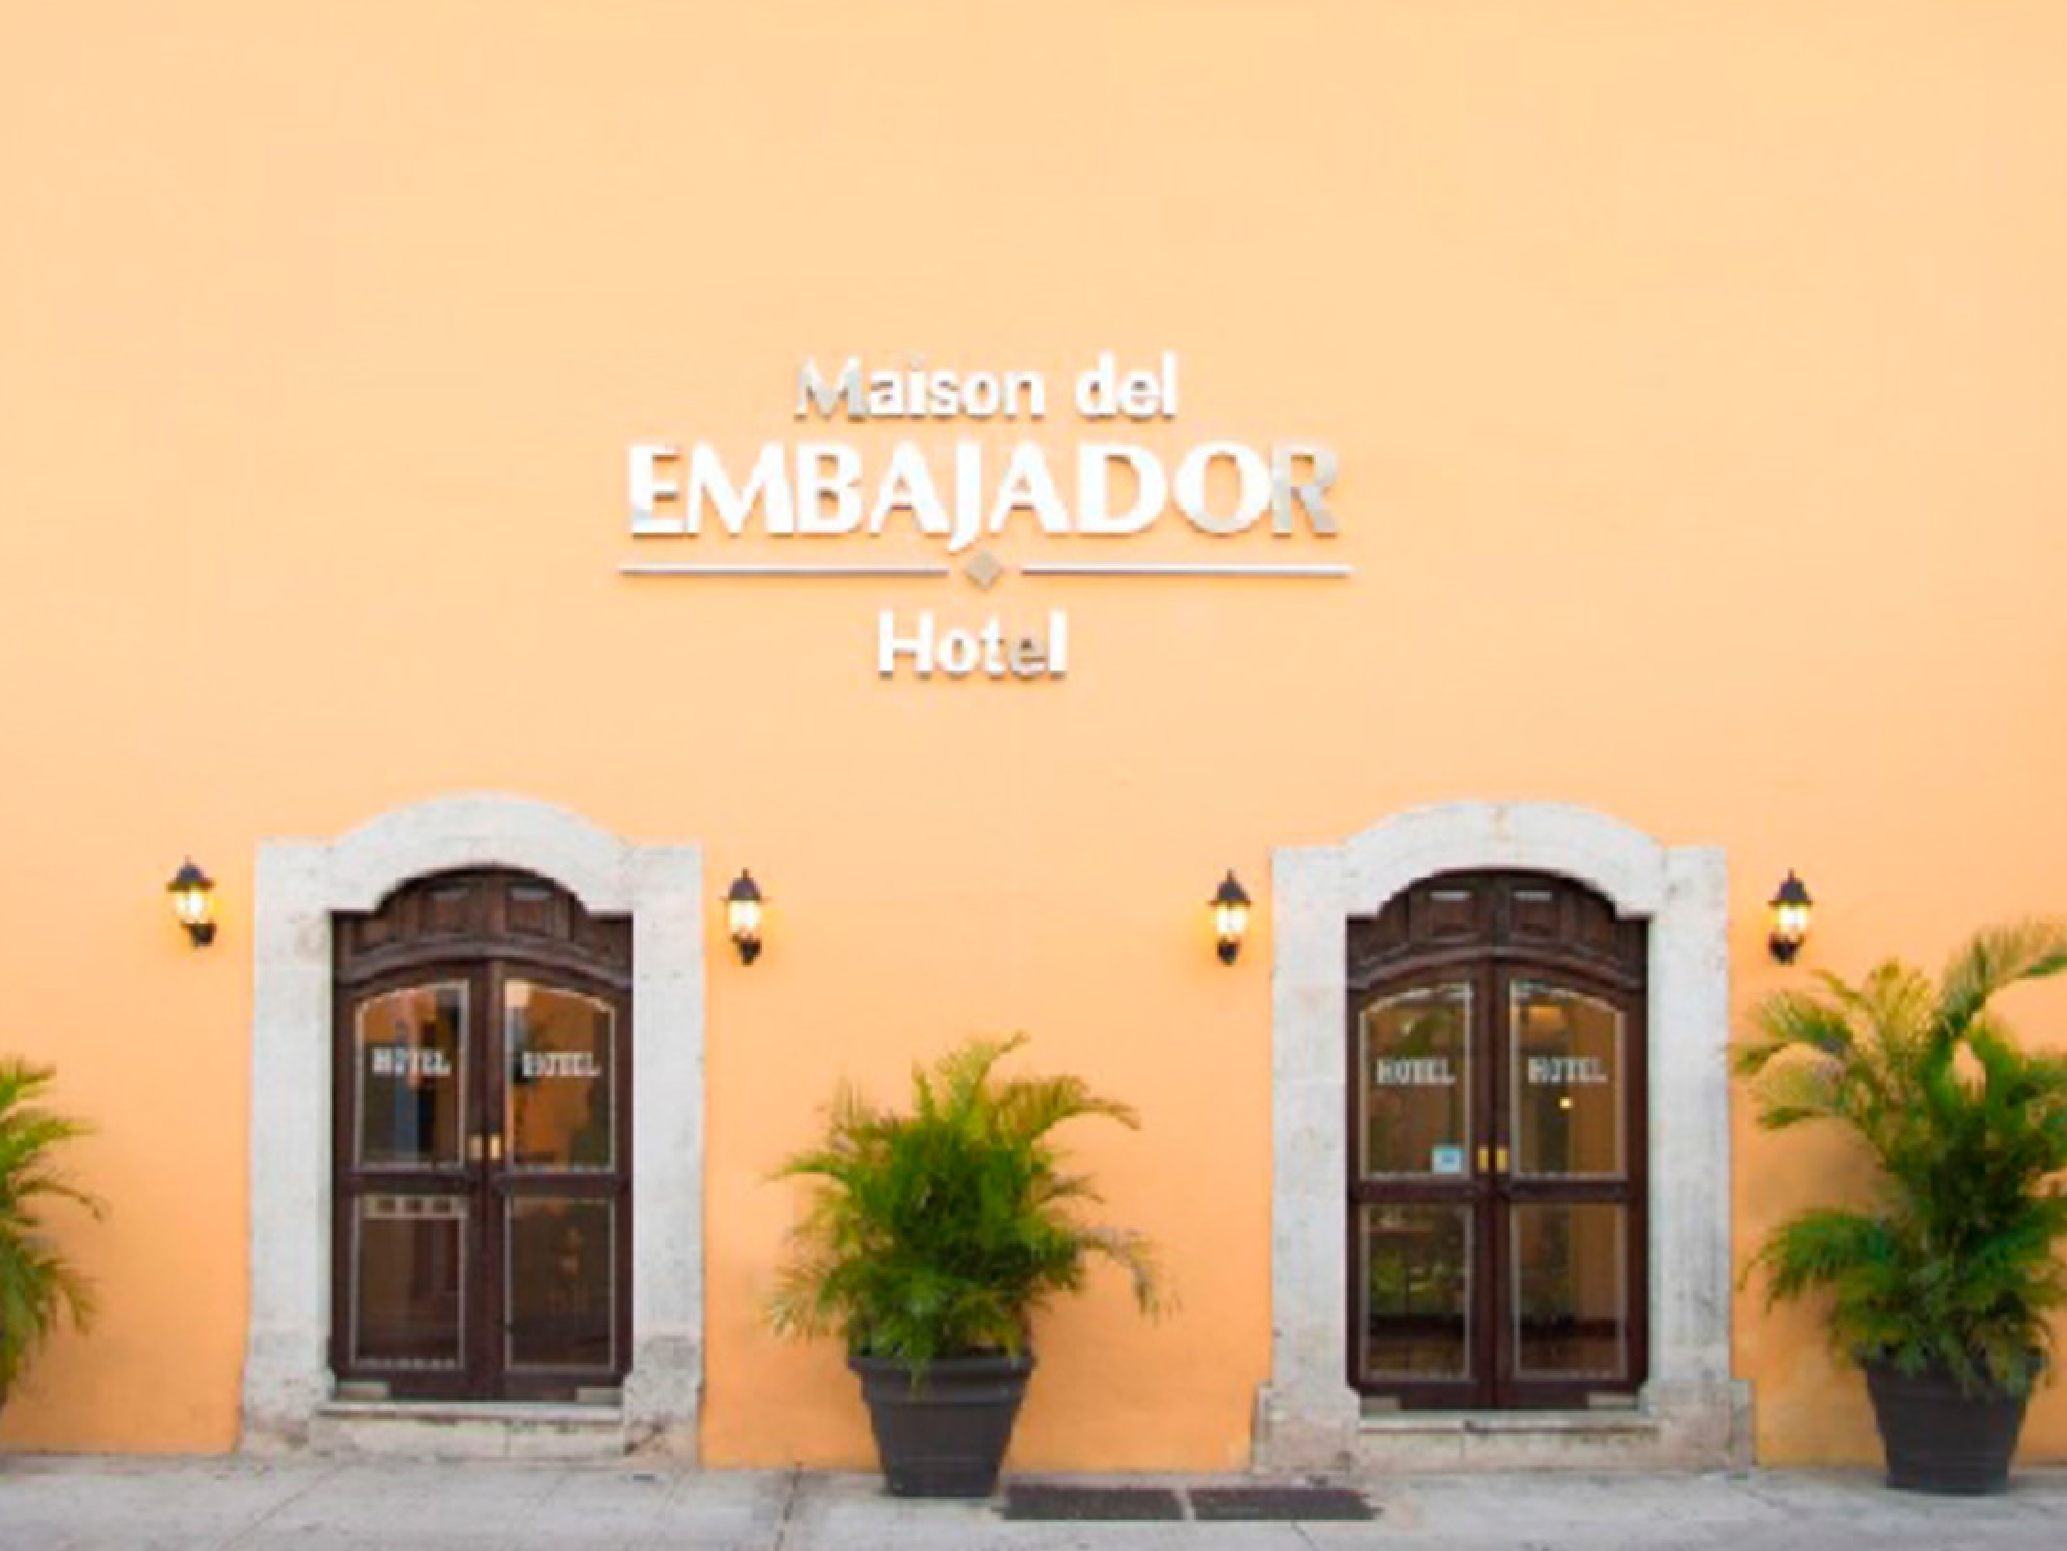 hotel Maison del Embajador Mérida - Day 3. 19 Feb. After breakfast, visit Valladiot church. Then visit Chichen Itza. Buffet luch. Then we visit one of the cenote. In the afternoon, journey to the gorgeous colonial town of Izamal. O/N Merida.